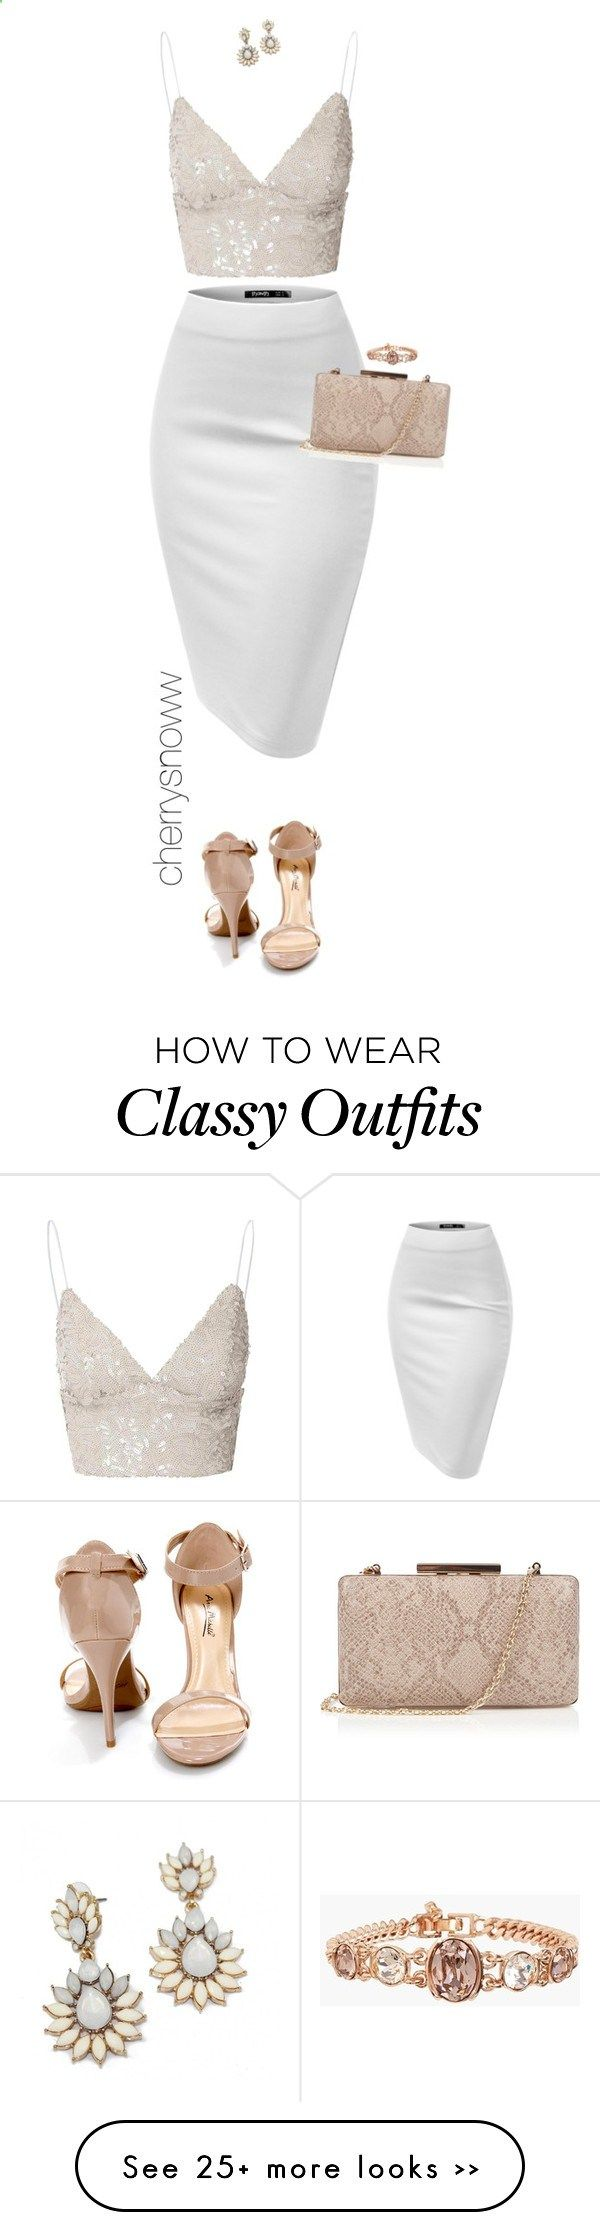 Classy chic date night outfit by cherrysnoww on Polyvore featuring Glamorous, Anne Michelle, Oasis and Givenchy